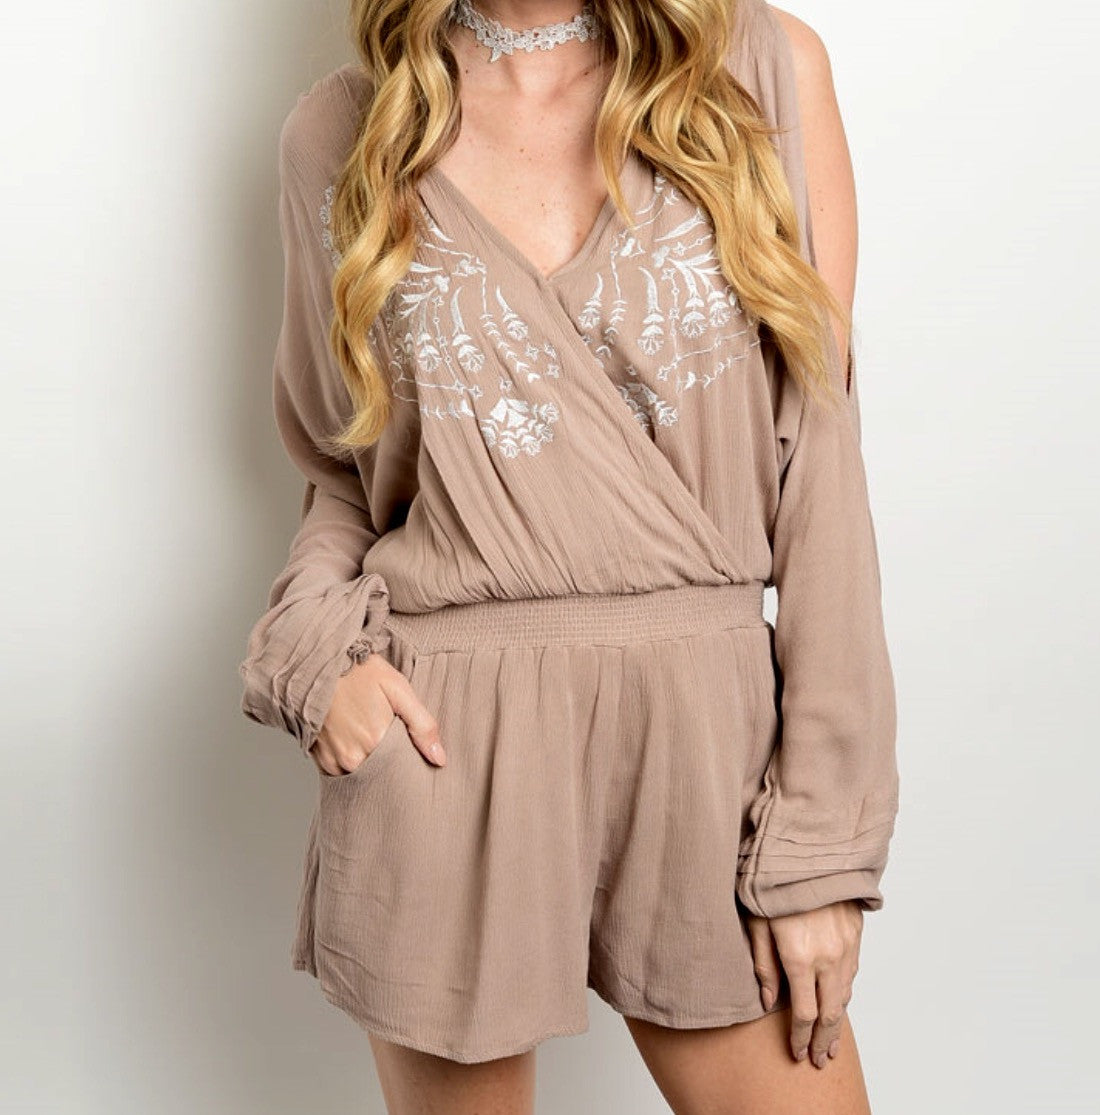 Taupe Embroidered Romper - BohoLocoBoutique